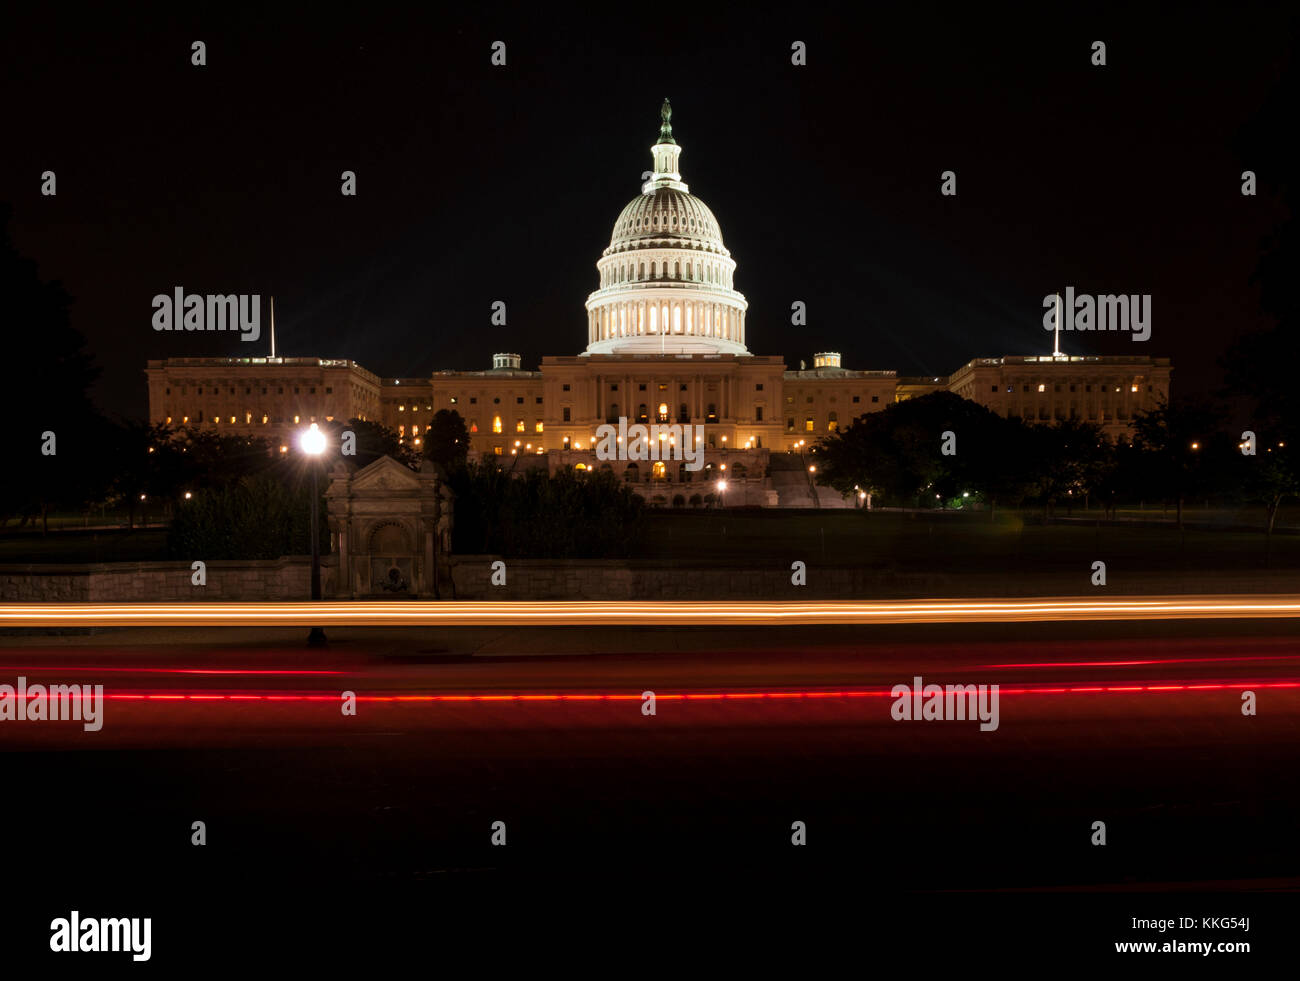 The United States Capitol Building at Night Stock Photo